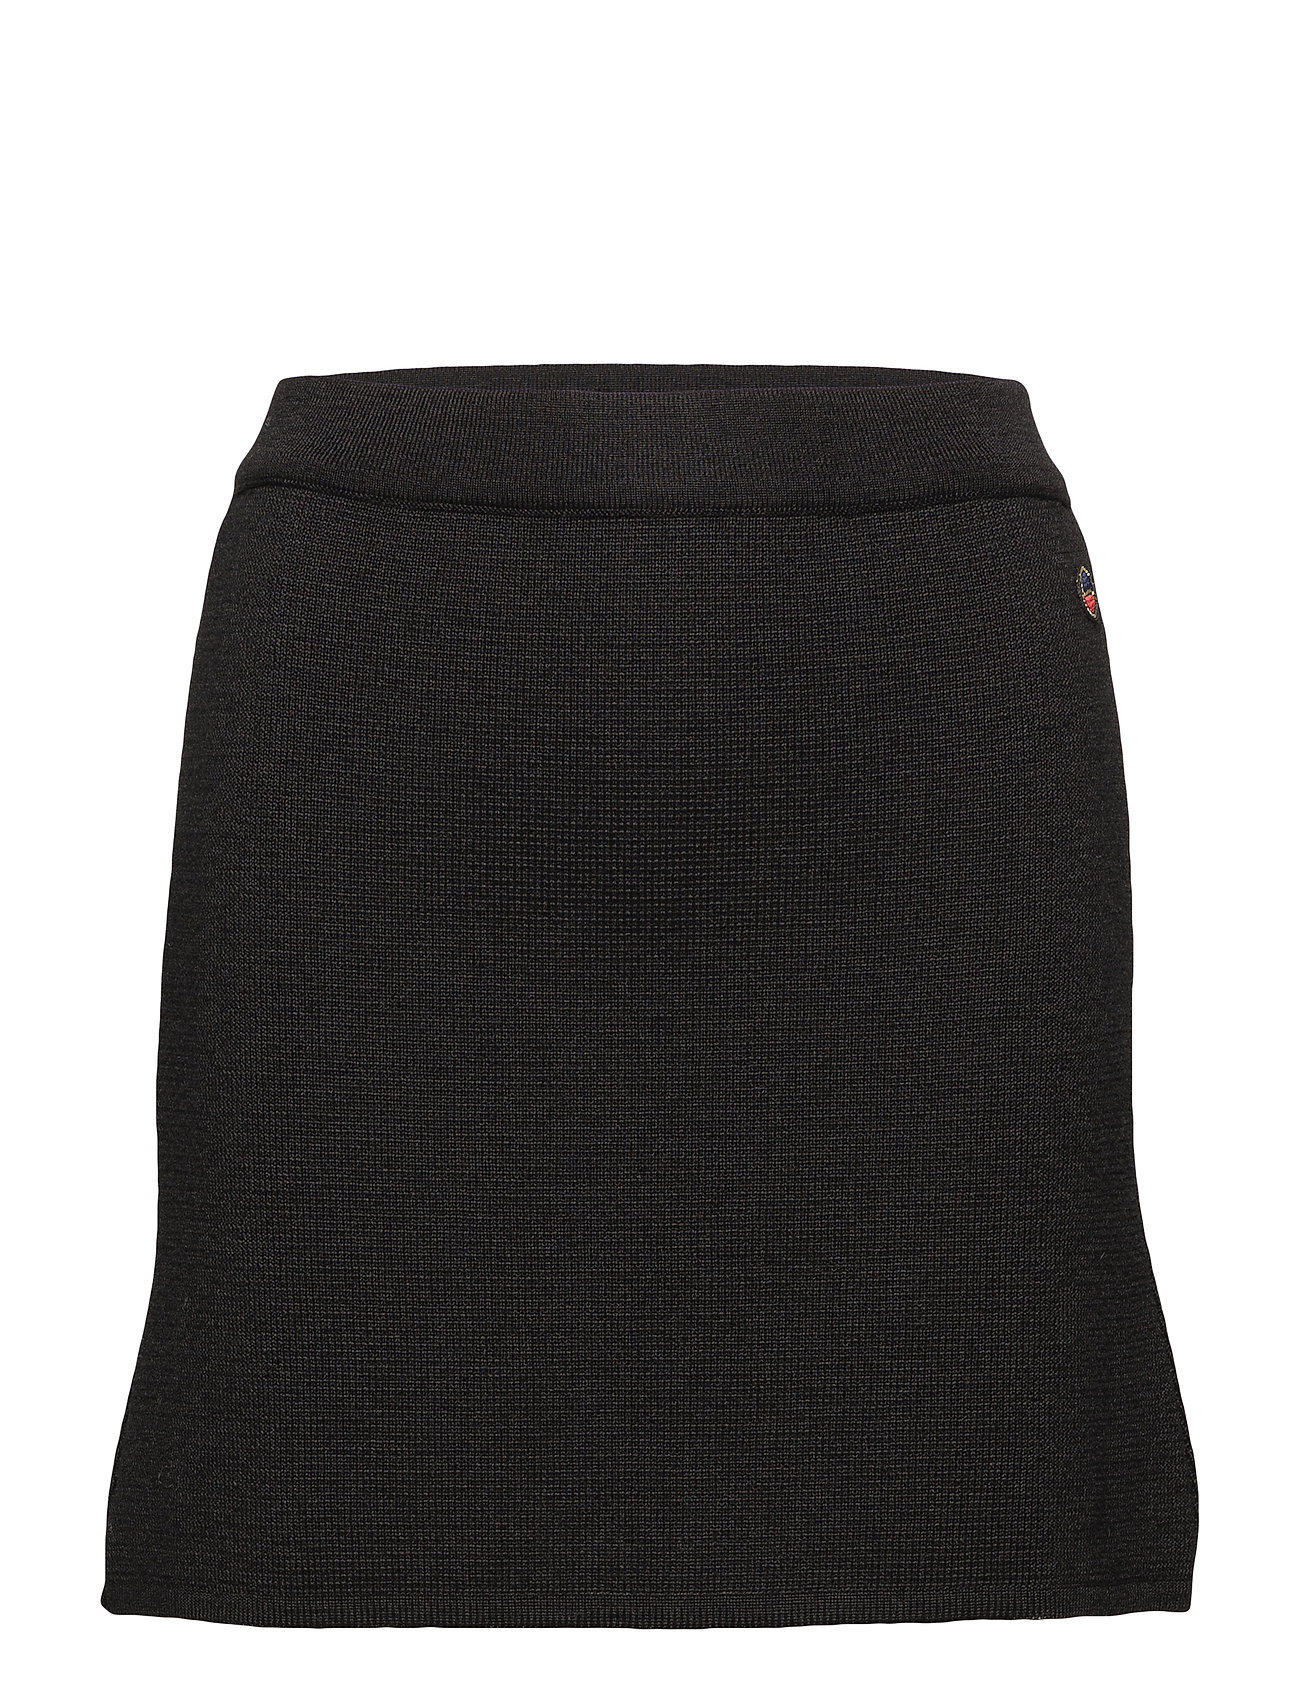 BUSNEL Mattie skirt - BLACK